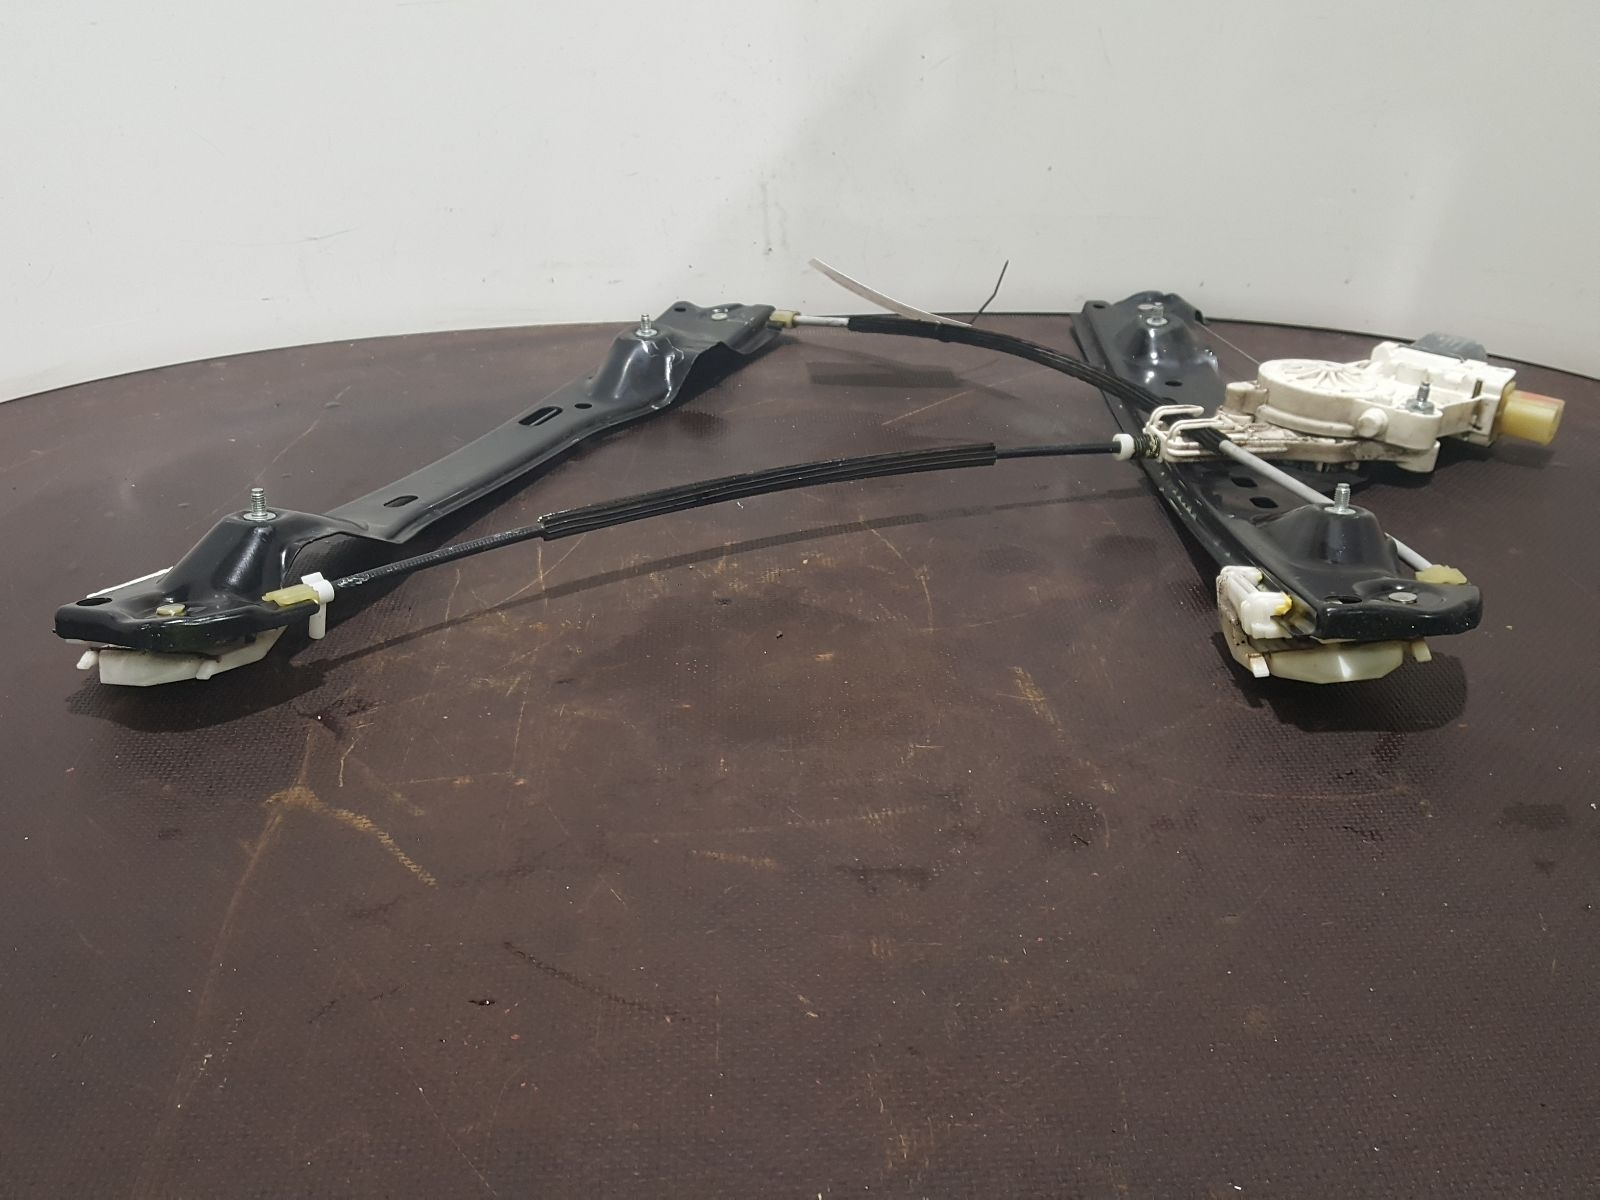 Bmw X1 2009 To 2012 Sdrive20d Se Door Front Window Regulator Rh Used Wiring And Spare Parts At Combellack Vehicle Recyclers